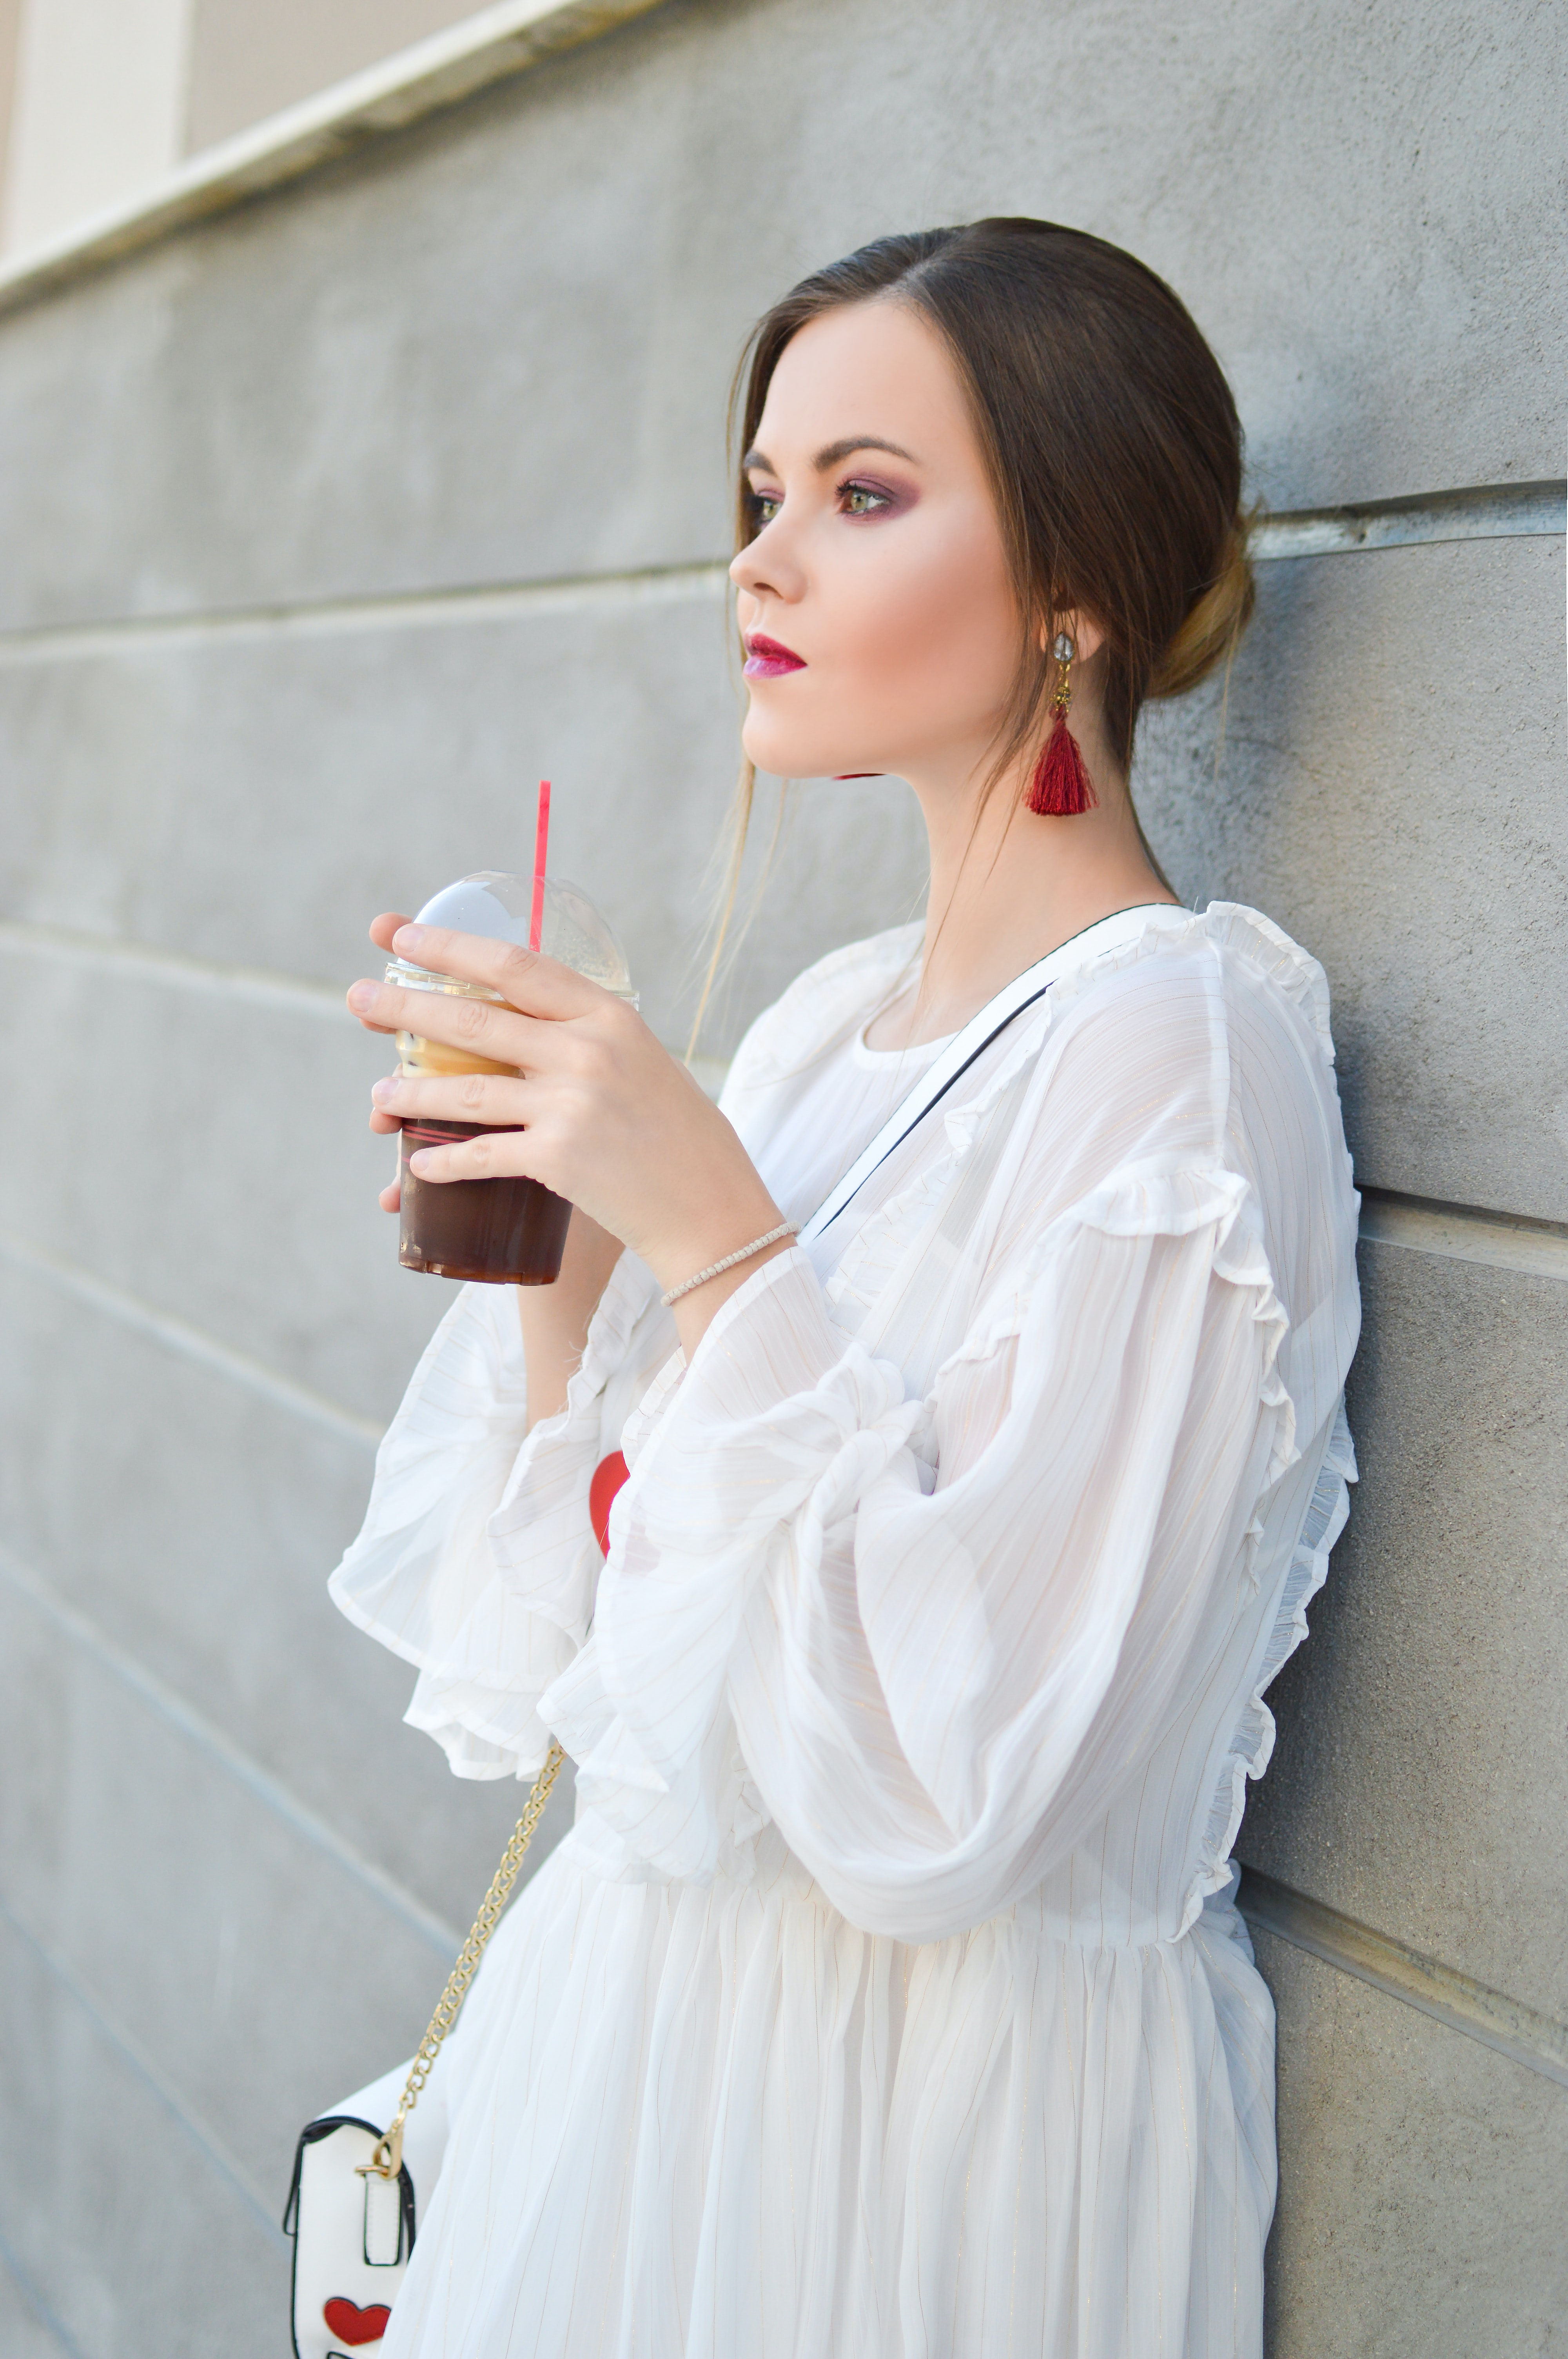 woman leaning on wall holding cups of black beverage